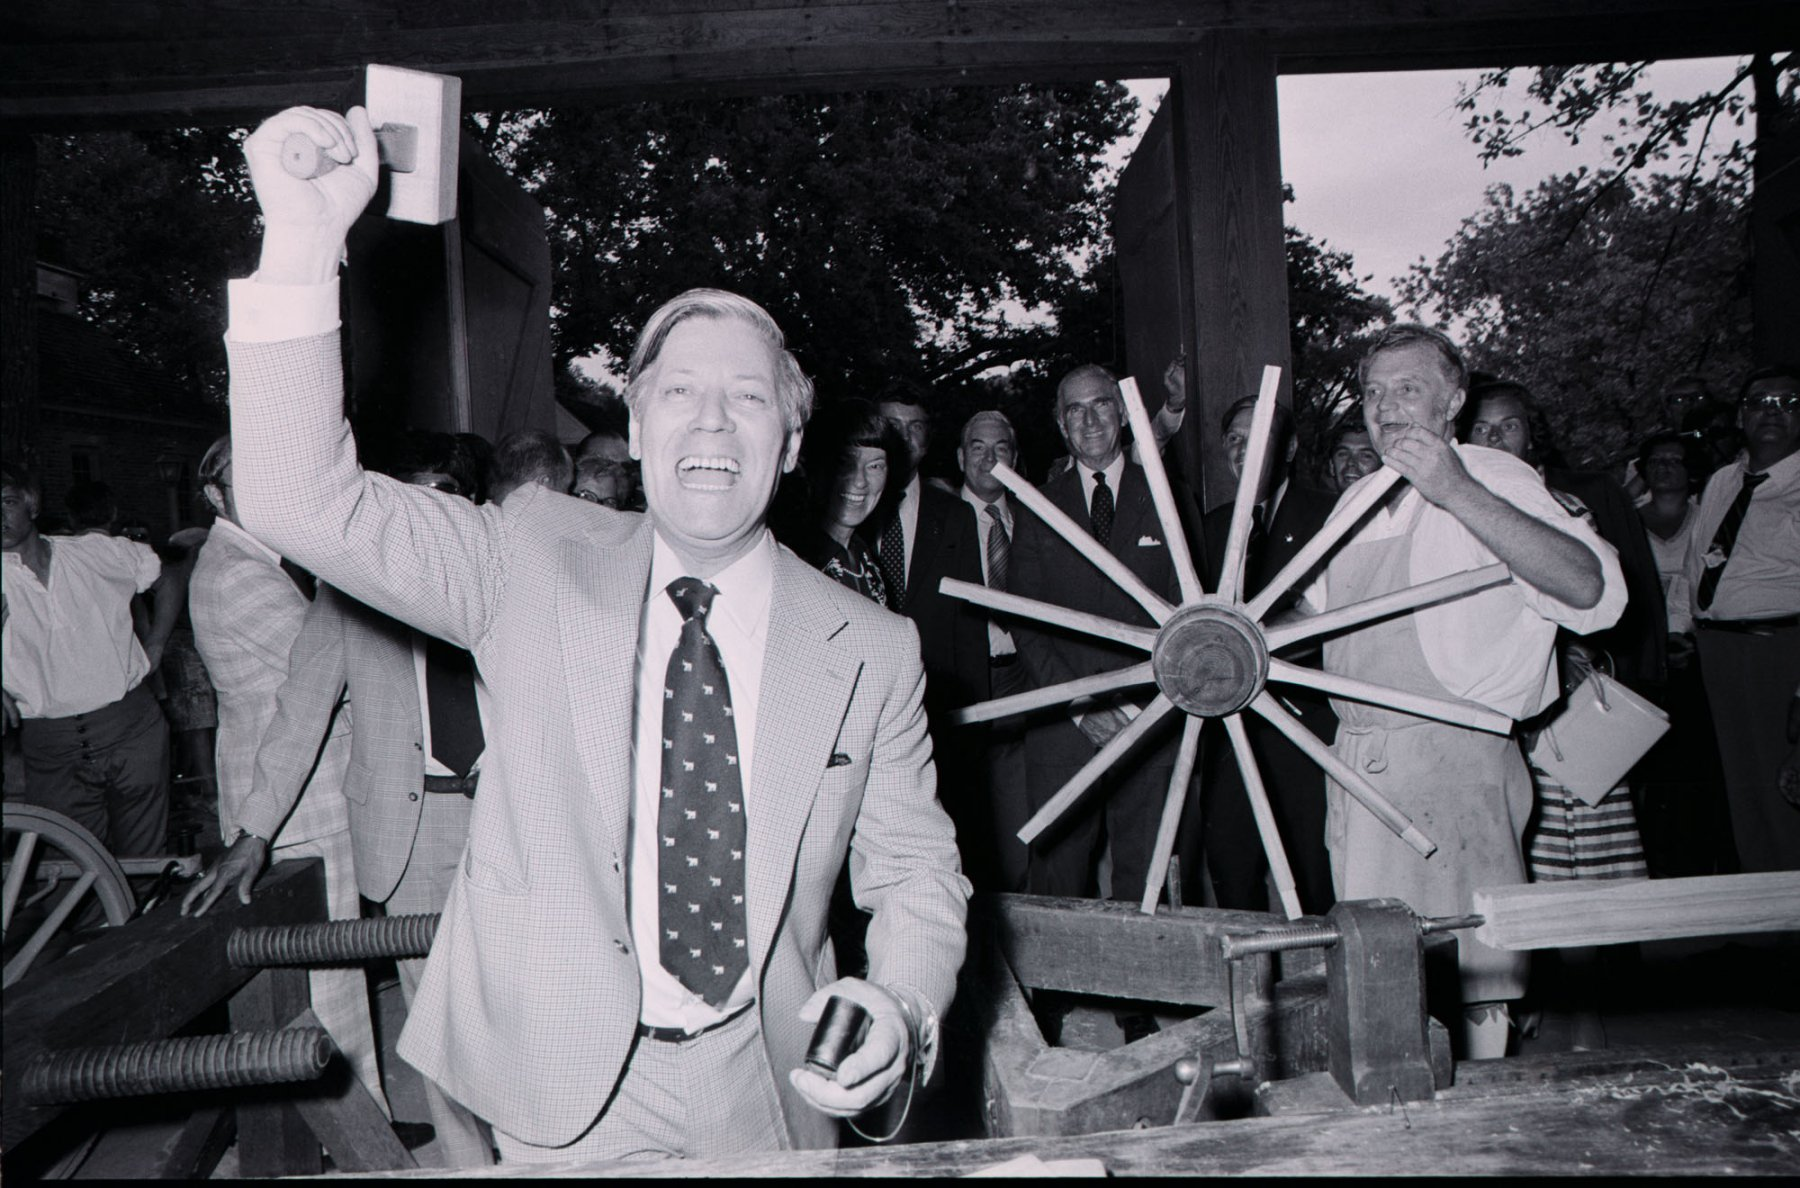 Chancellor Helmut Schmidt Making Fun with the Photographer, Colonial Williamsburg, 1976